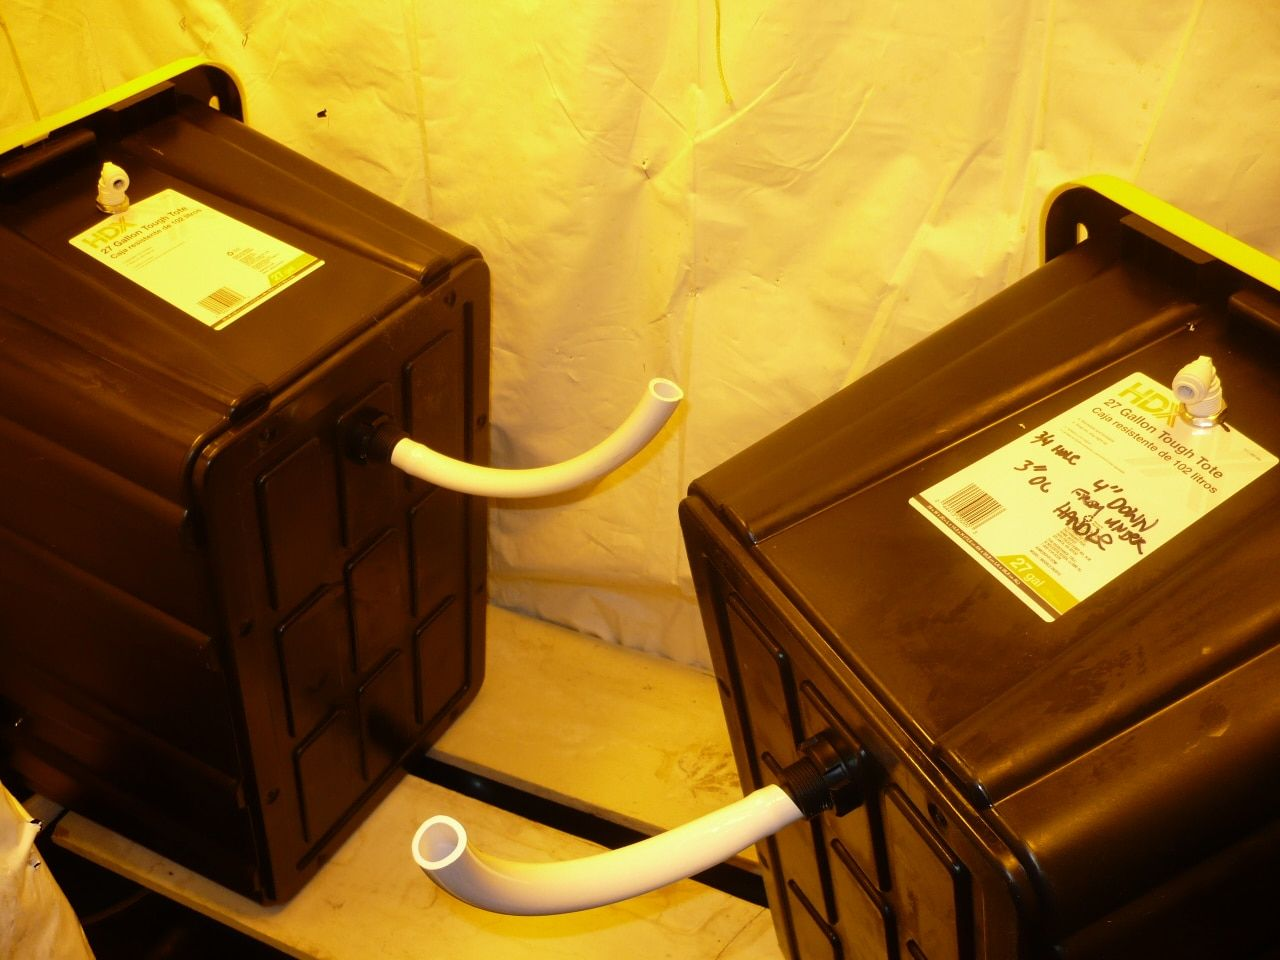 High Pressure Aeroponics Diy System With Images 400 x 300